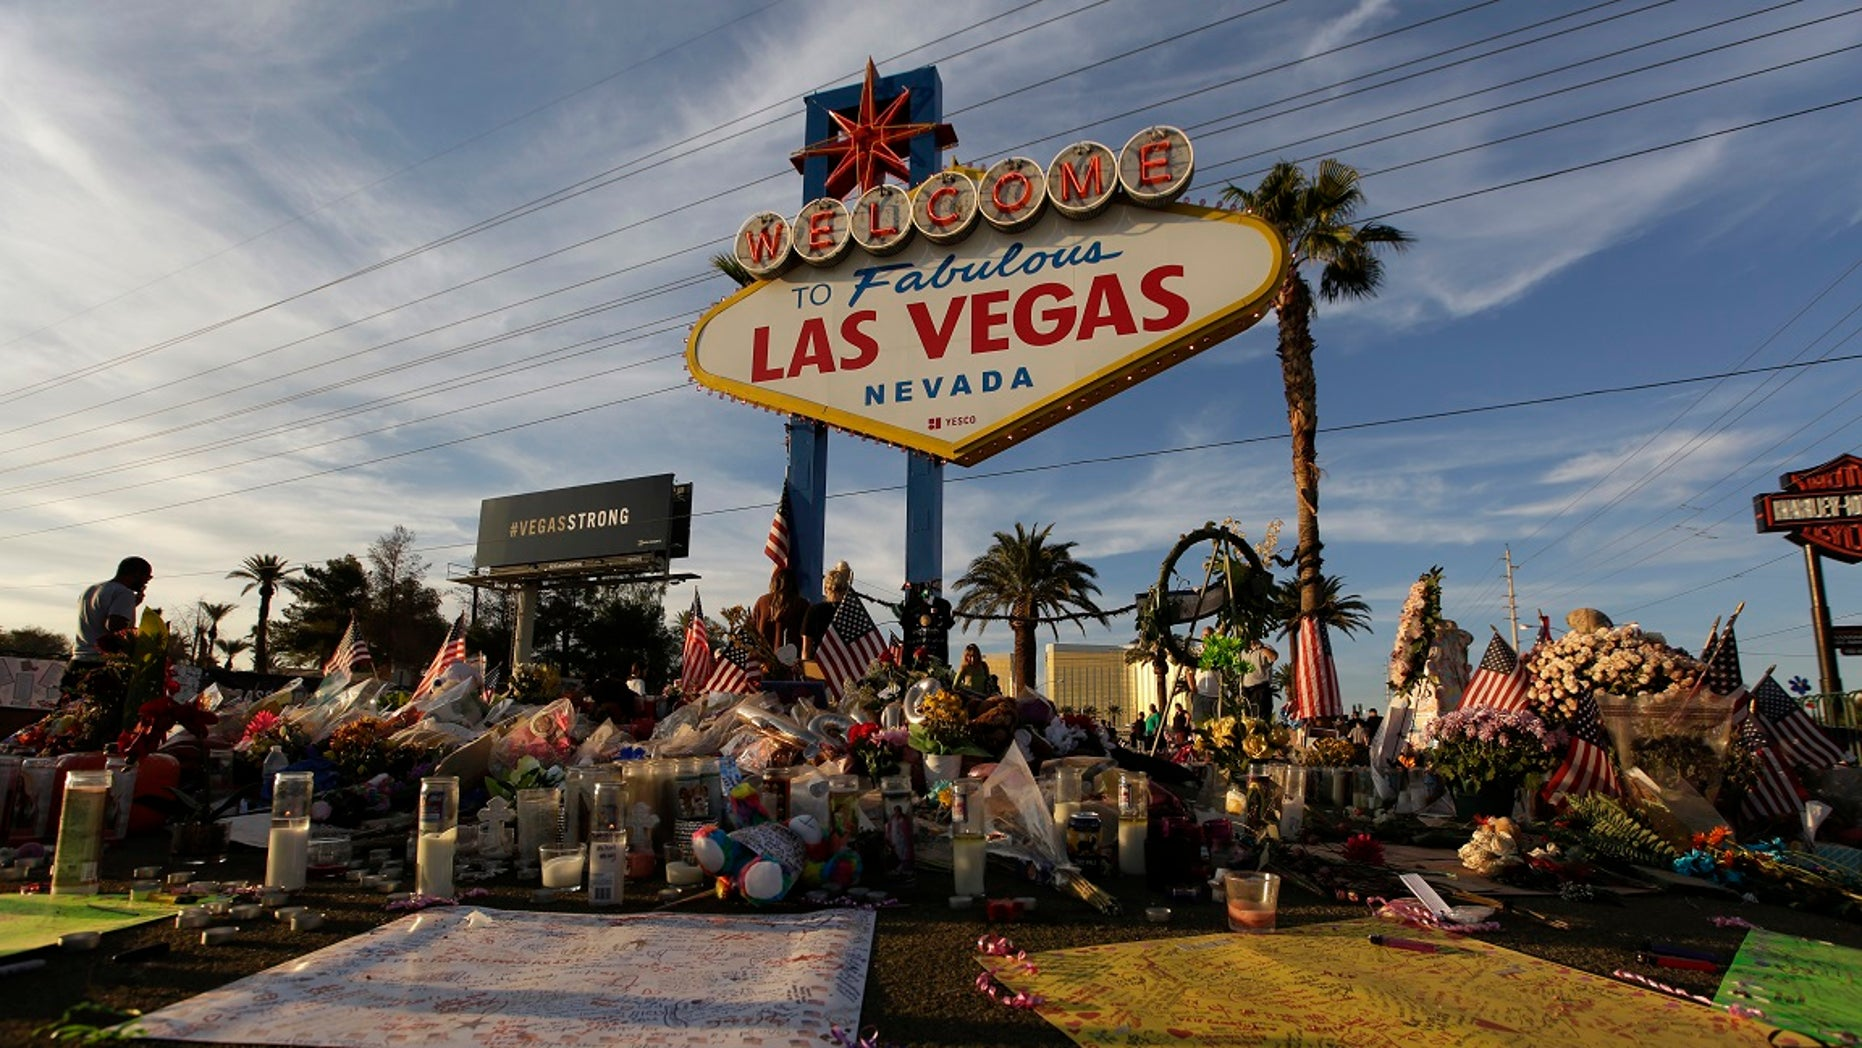 People visit a makeshift memorial for victims of the Oct. 1 mass shooting in Las Vegas, Oct. 16, 2017.